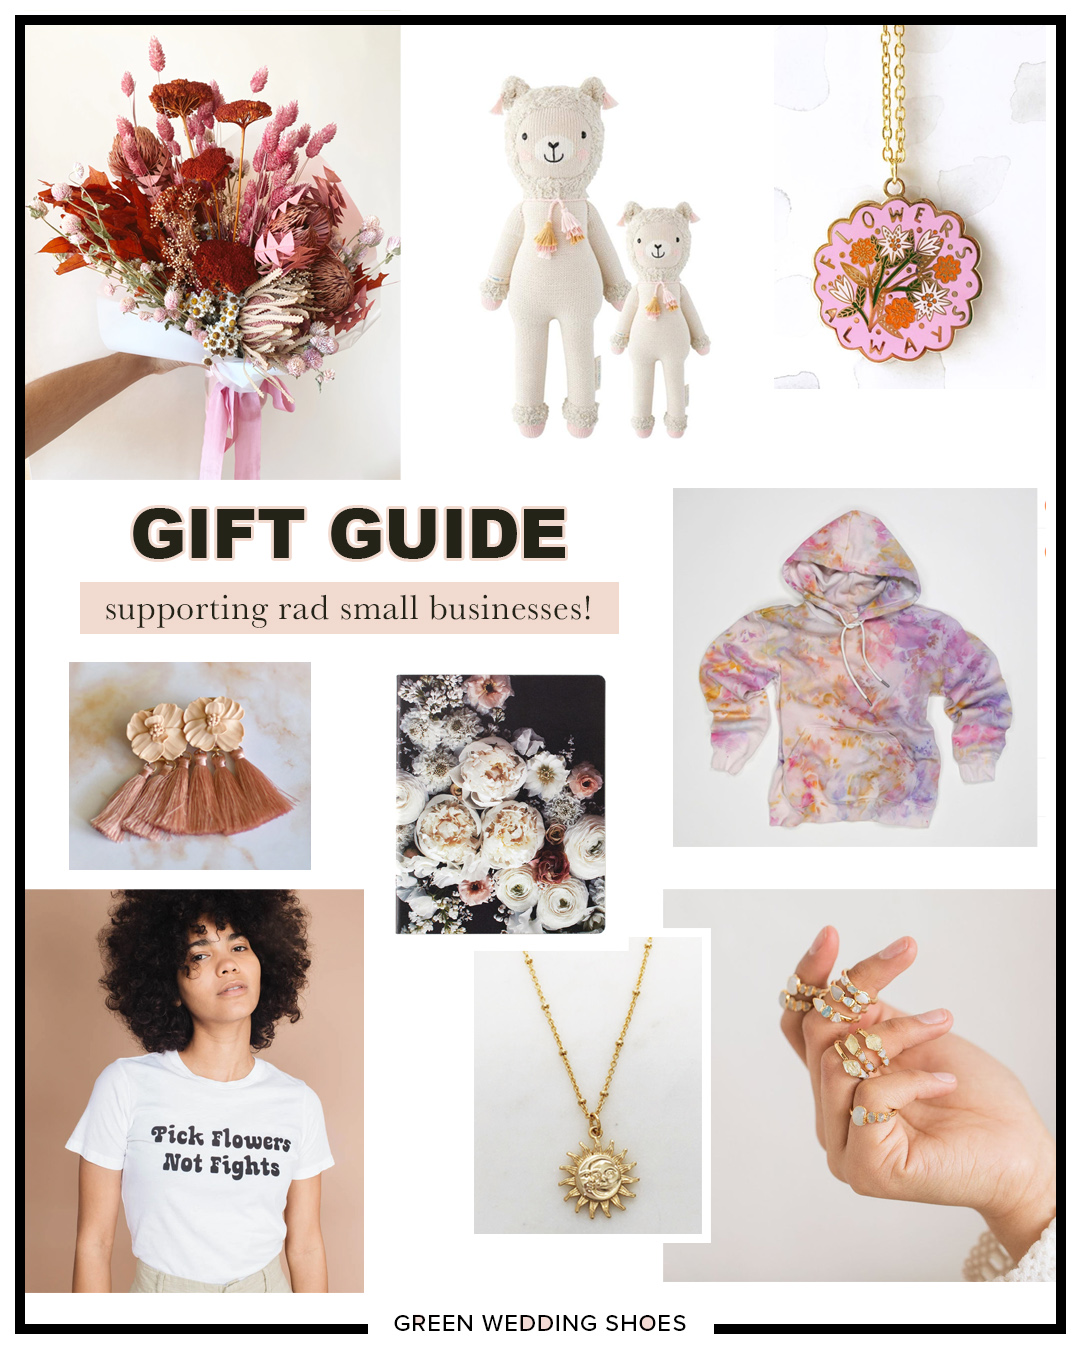 Shop Small 26 Gift Ideas From Small Businesses Green Wedding Shoes